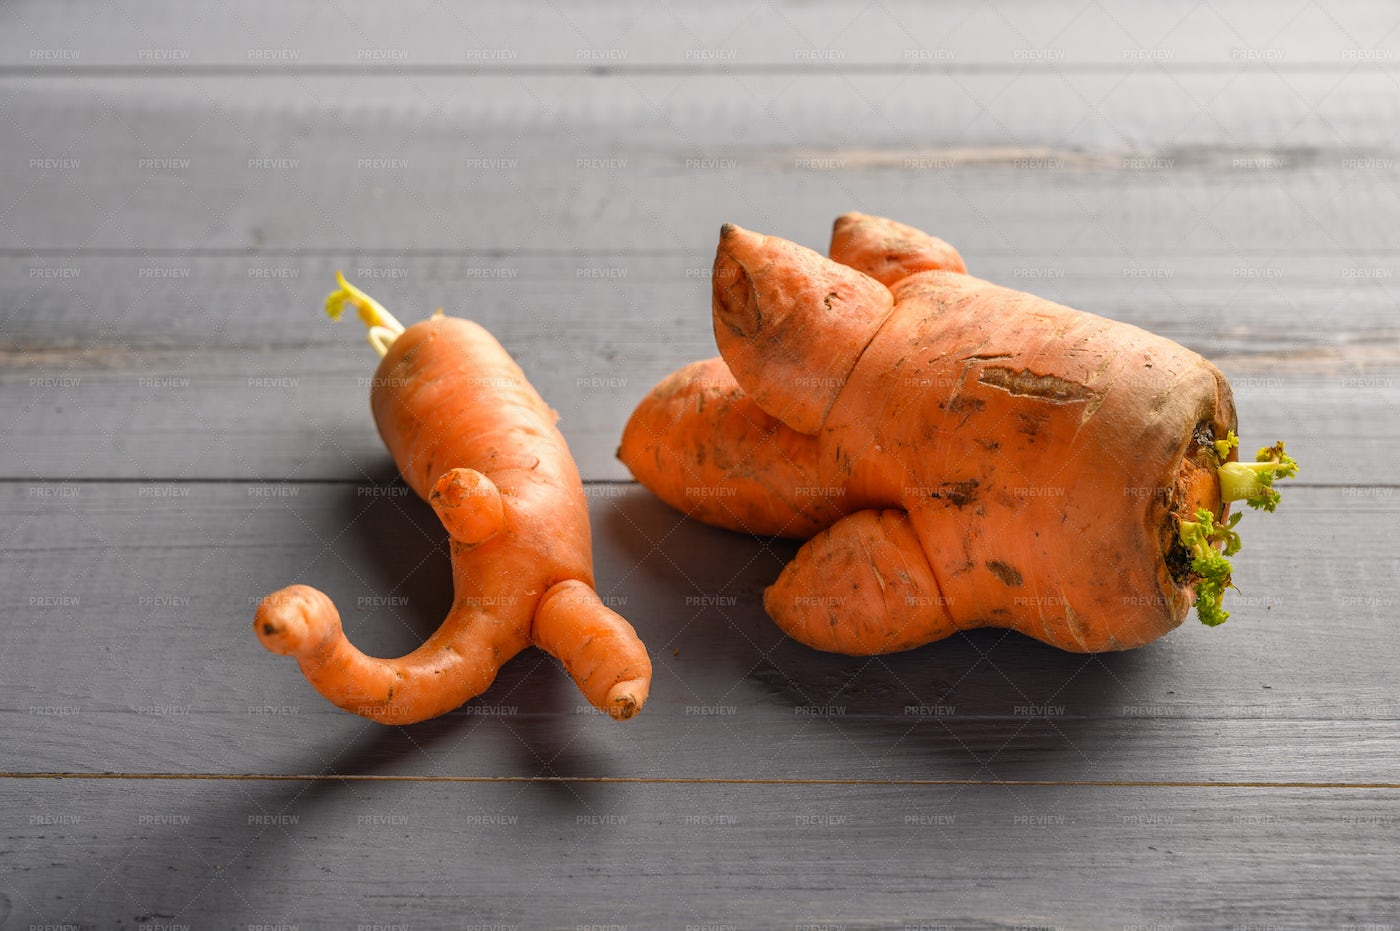 Ugly Carrots On Table: Stock Photos